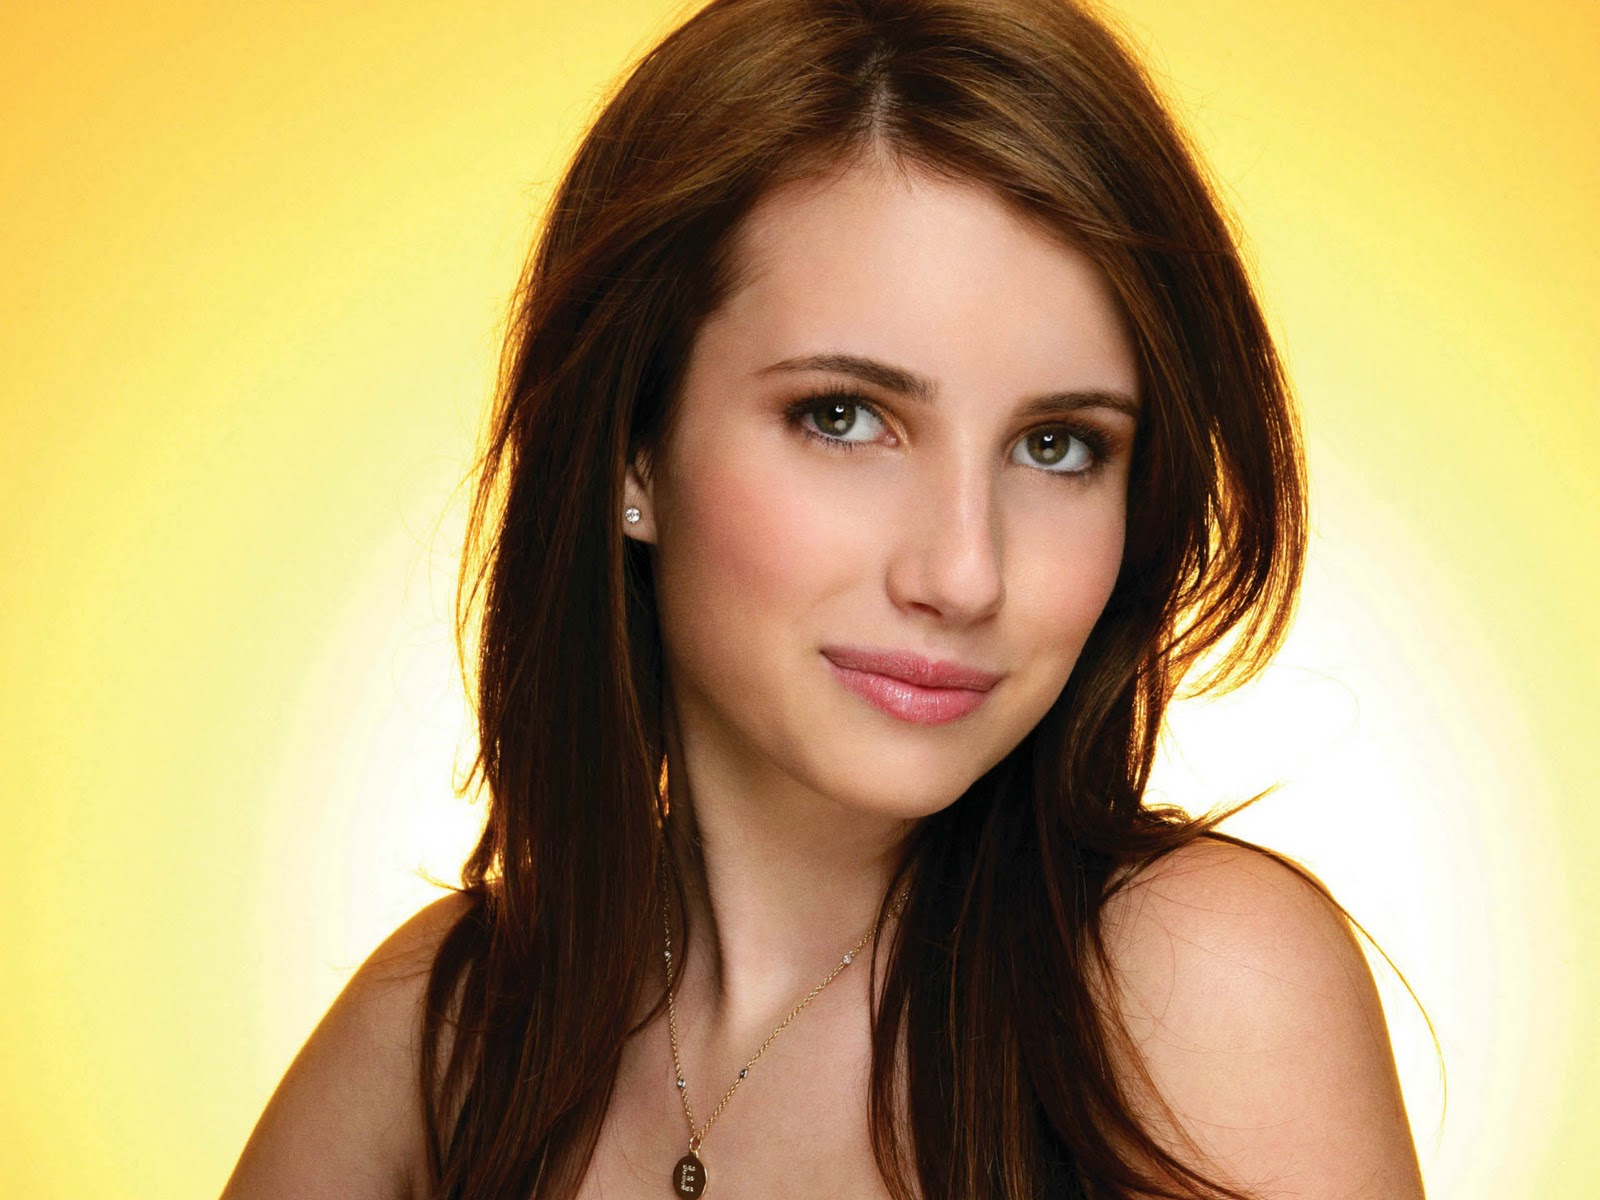 emma roberts hotel for dogs shoot hd wallpapers - Emma Roberts Hotel For Dogs Shoot HD Wallpapers HD